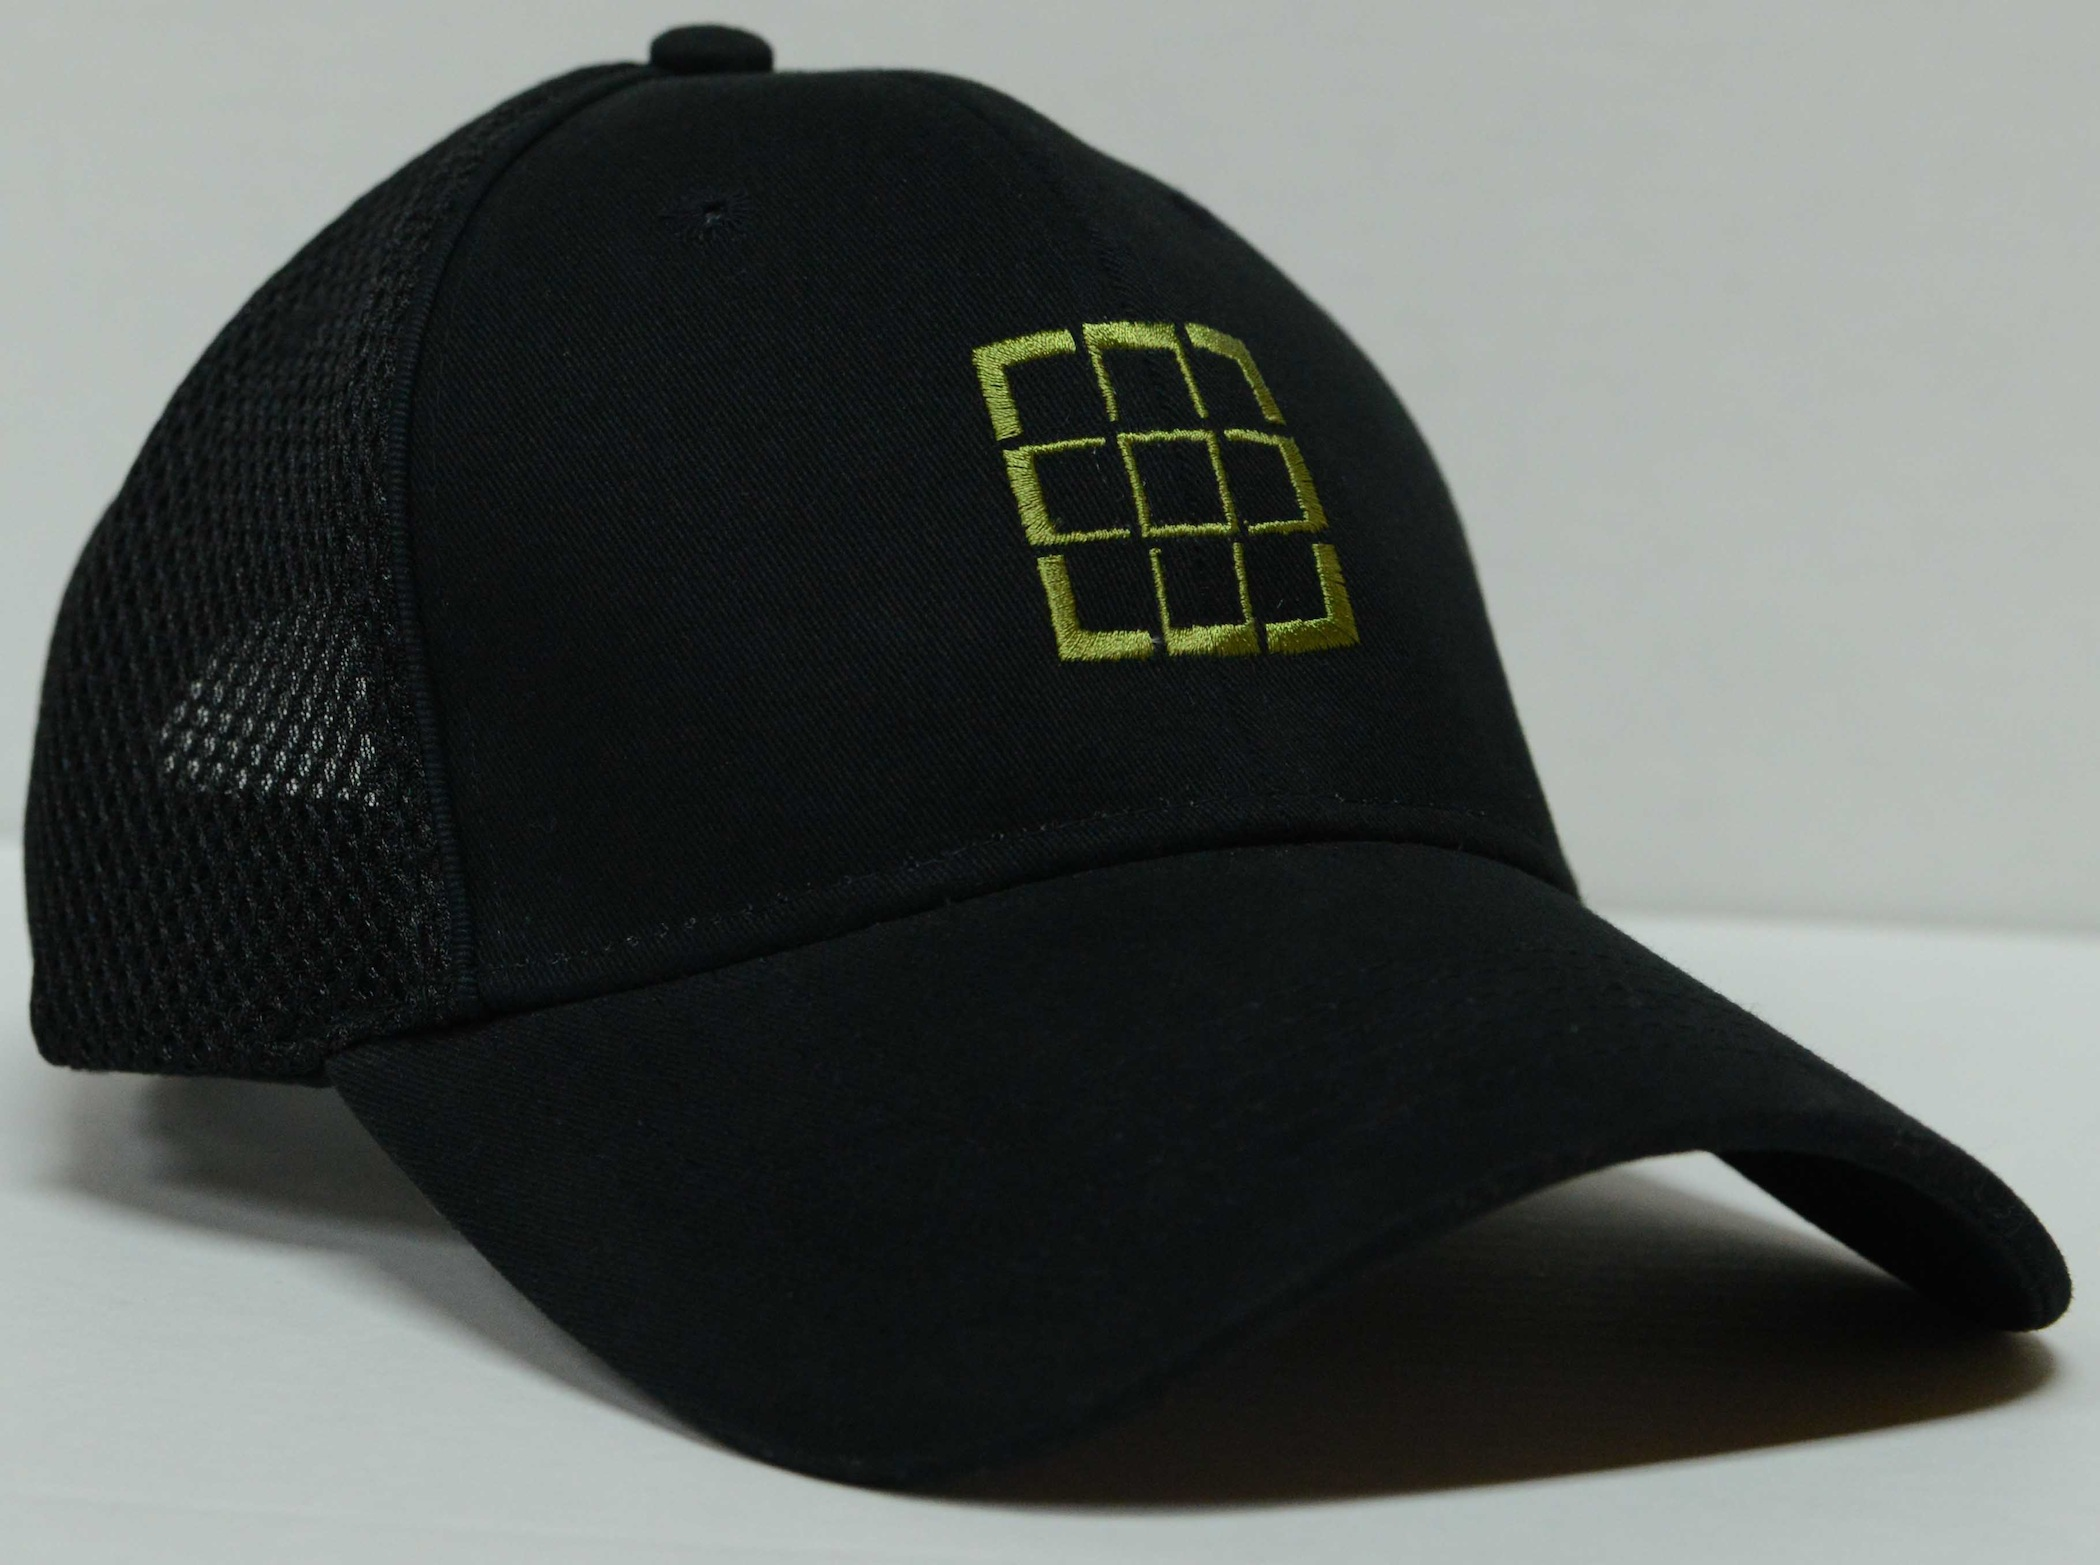 i7025 - SPG - Double Mesh with Piping Structured Hat